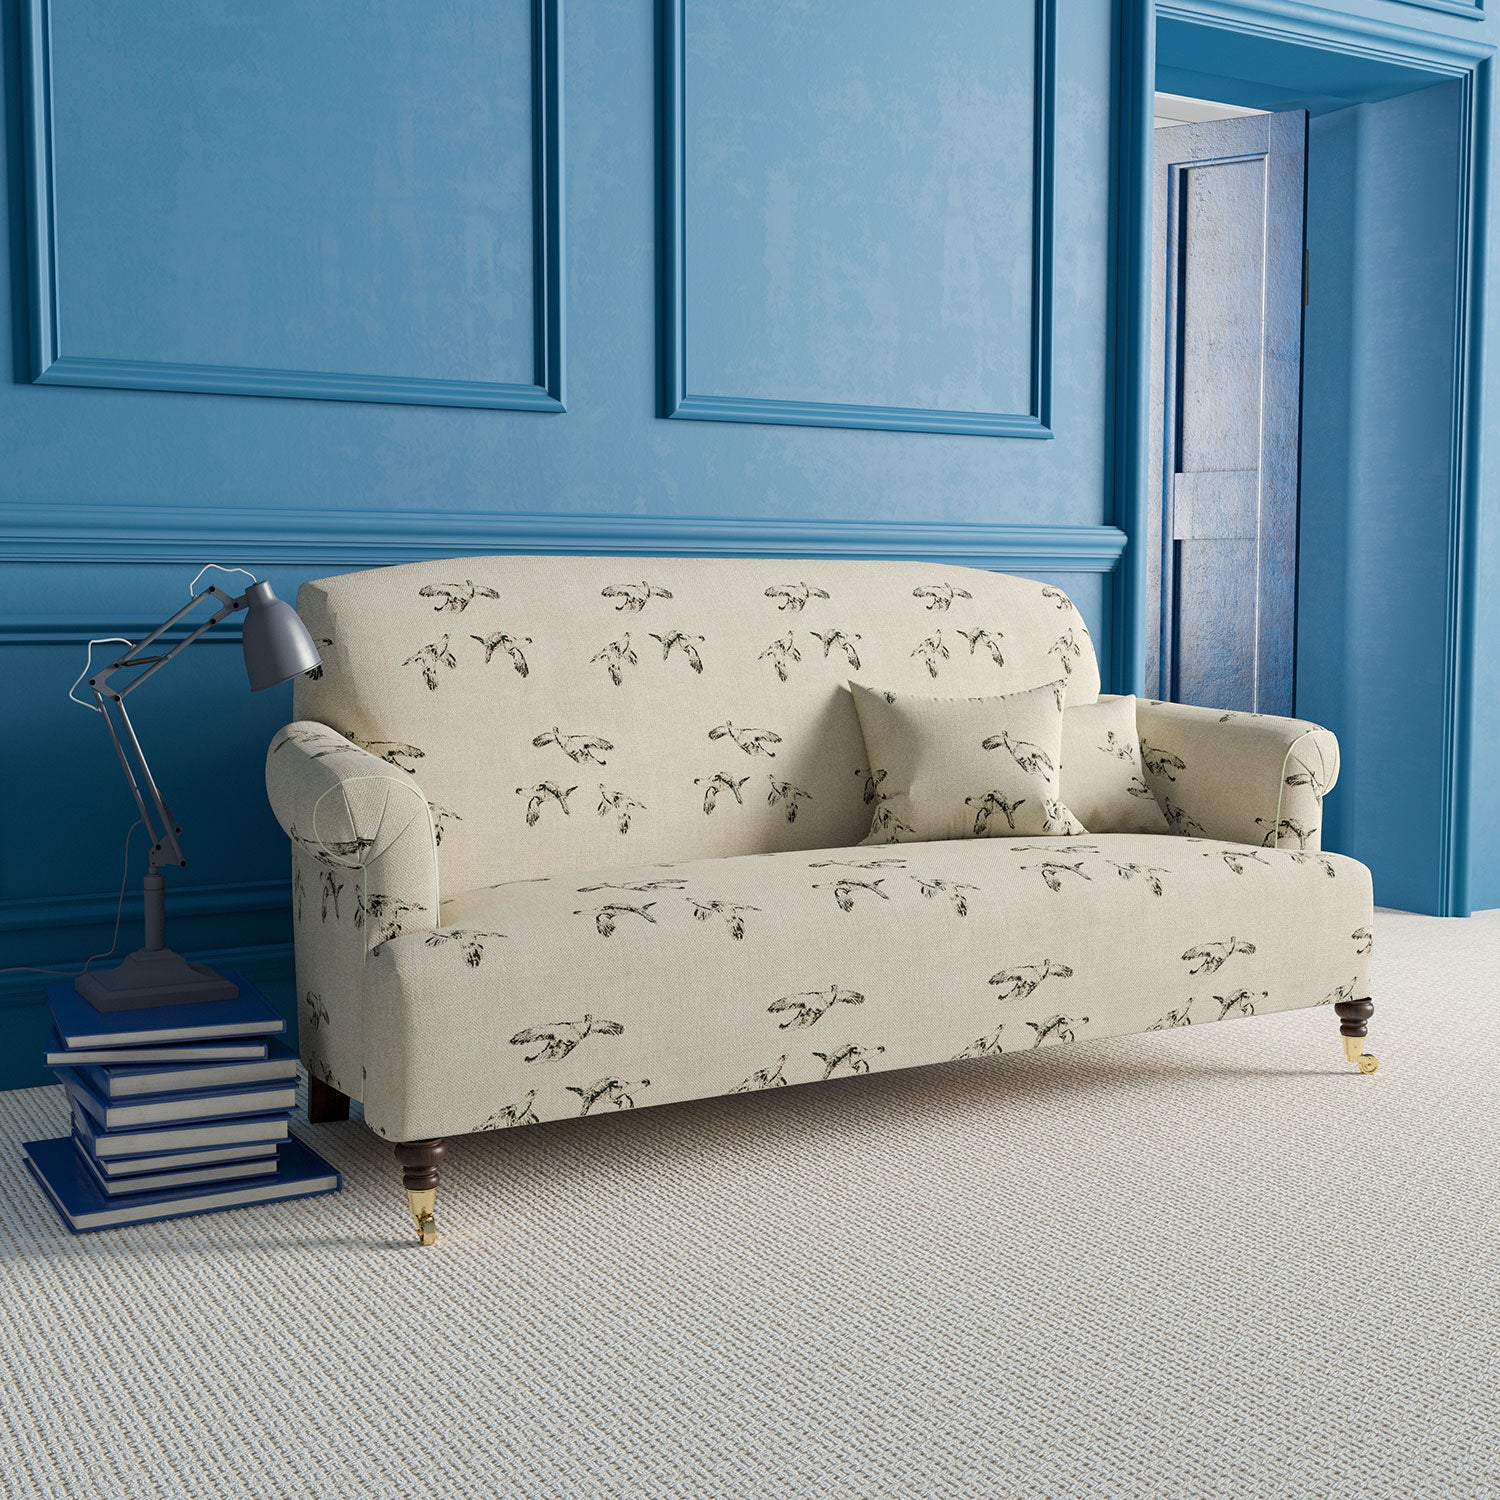 Sofa upholstered in neutral linen fabric with grey illustrated Grouse bird design.